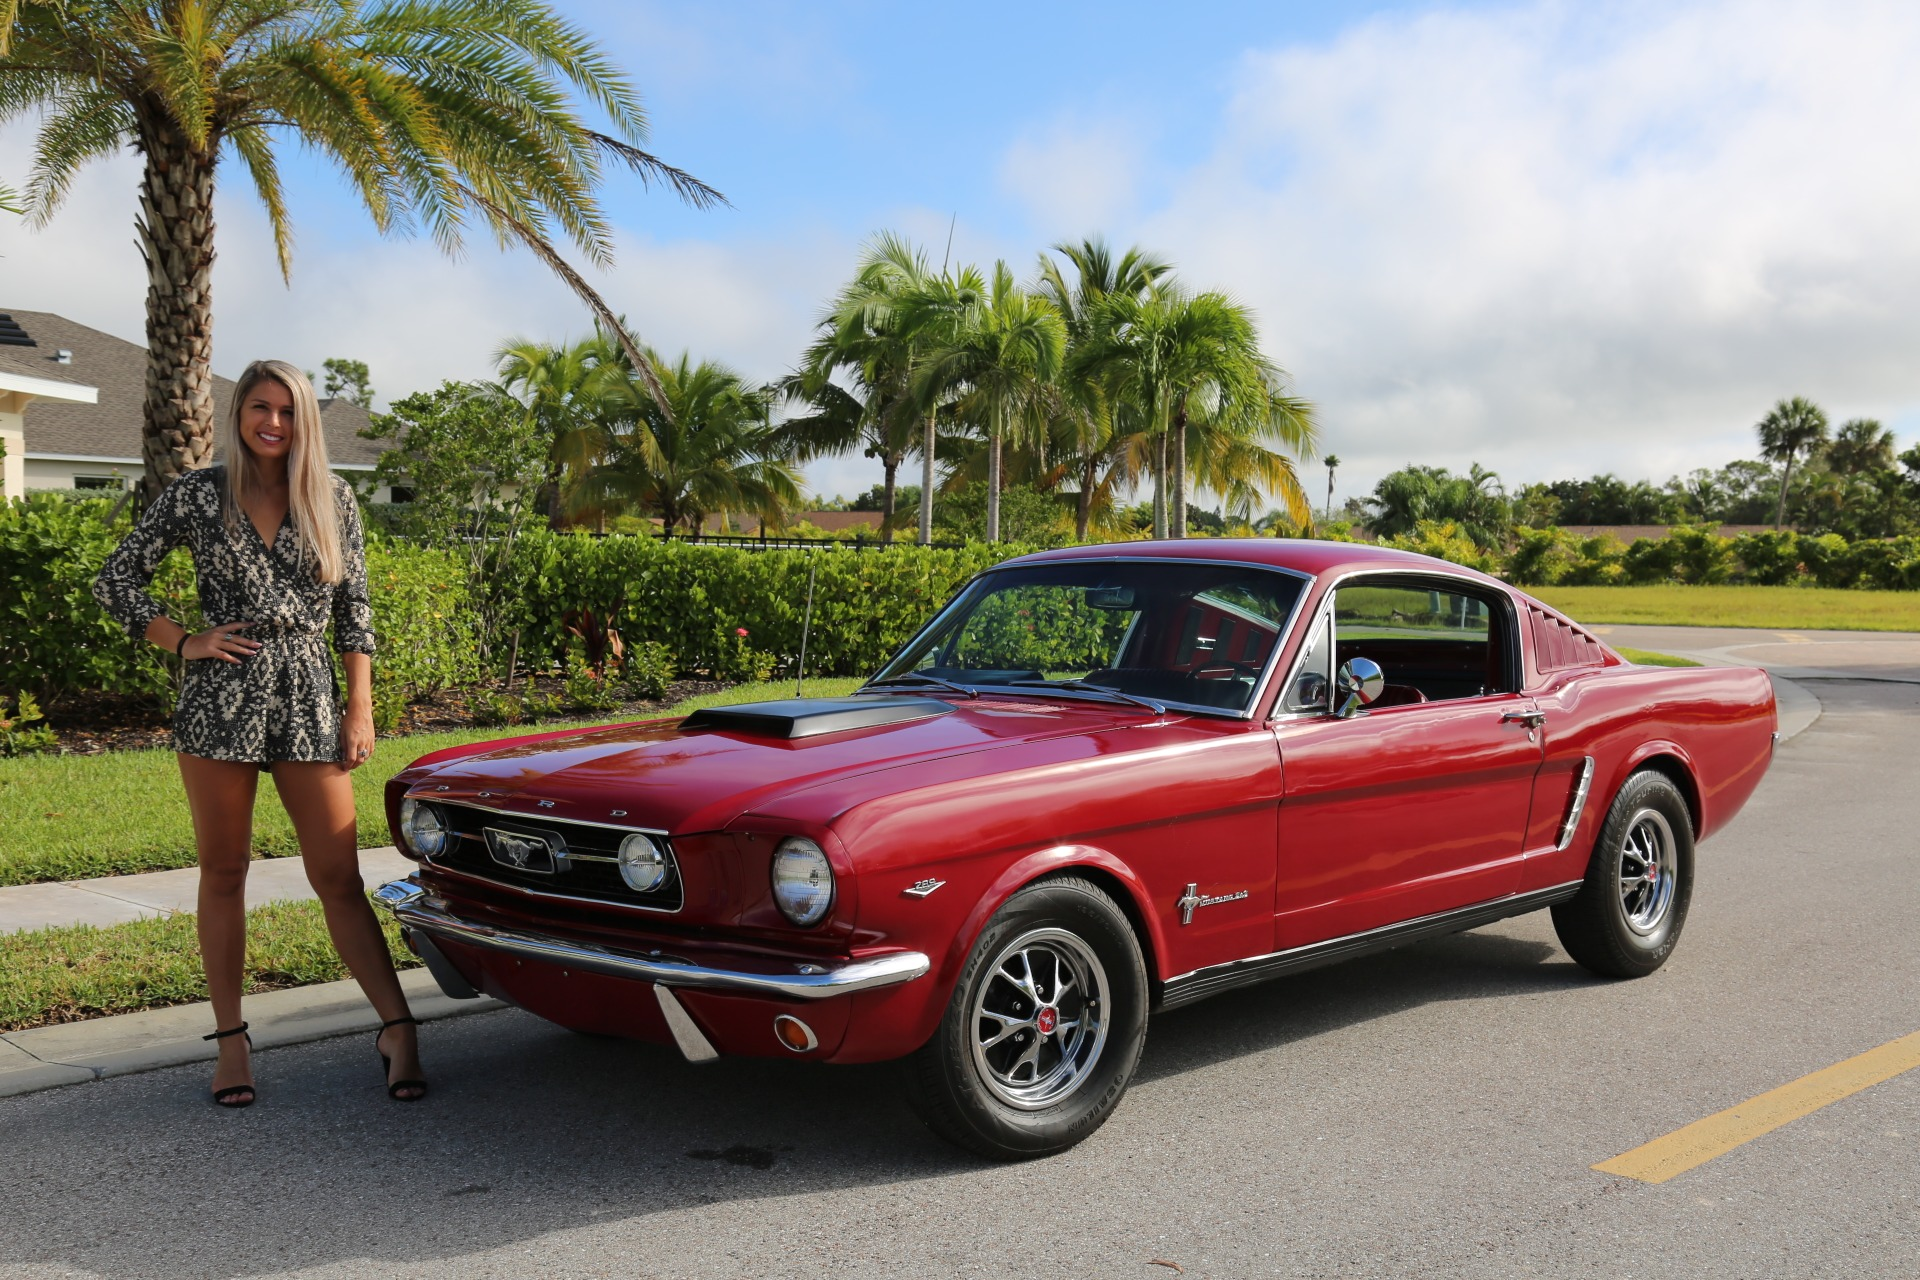 Used 1966 Ford Mustang Fastback 2+2 for sale Sold at Muscle Cars for Sale Inc. in Fort Myers FL 33912 1